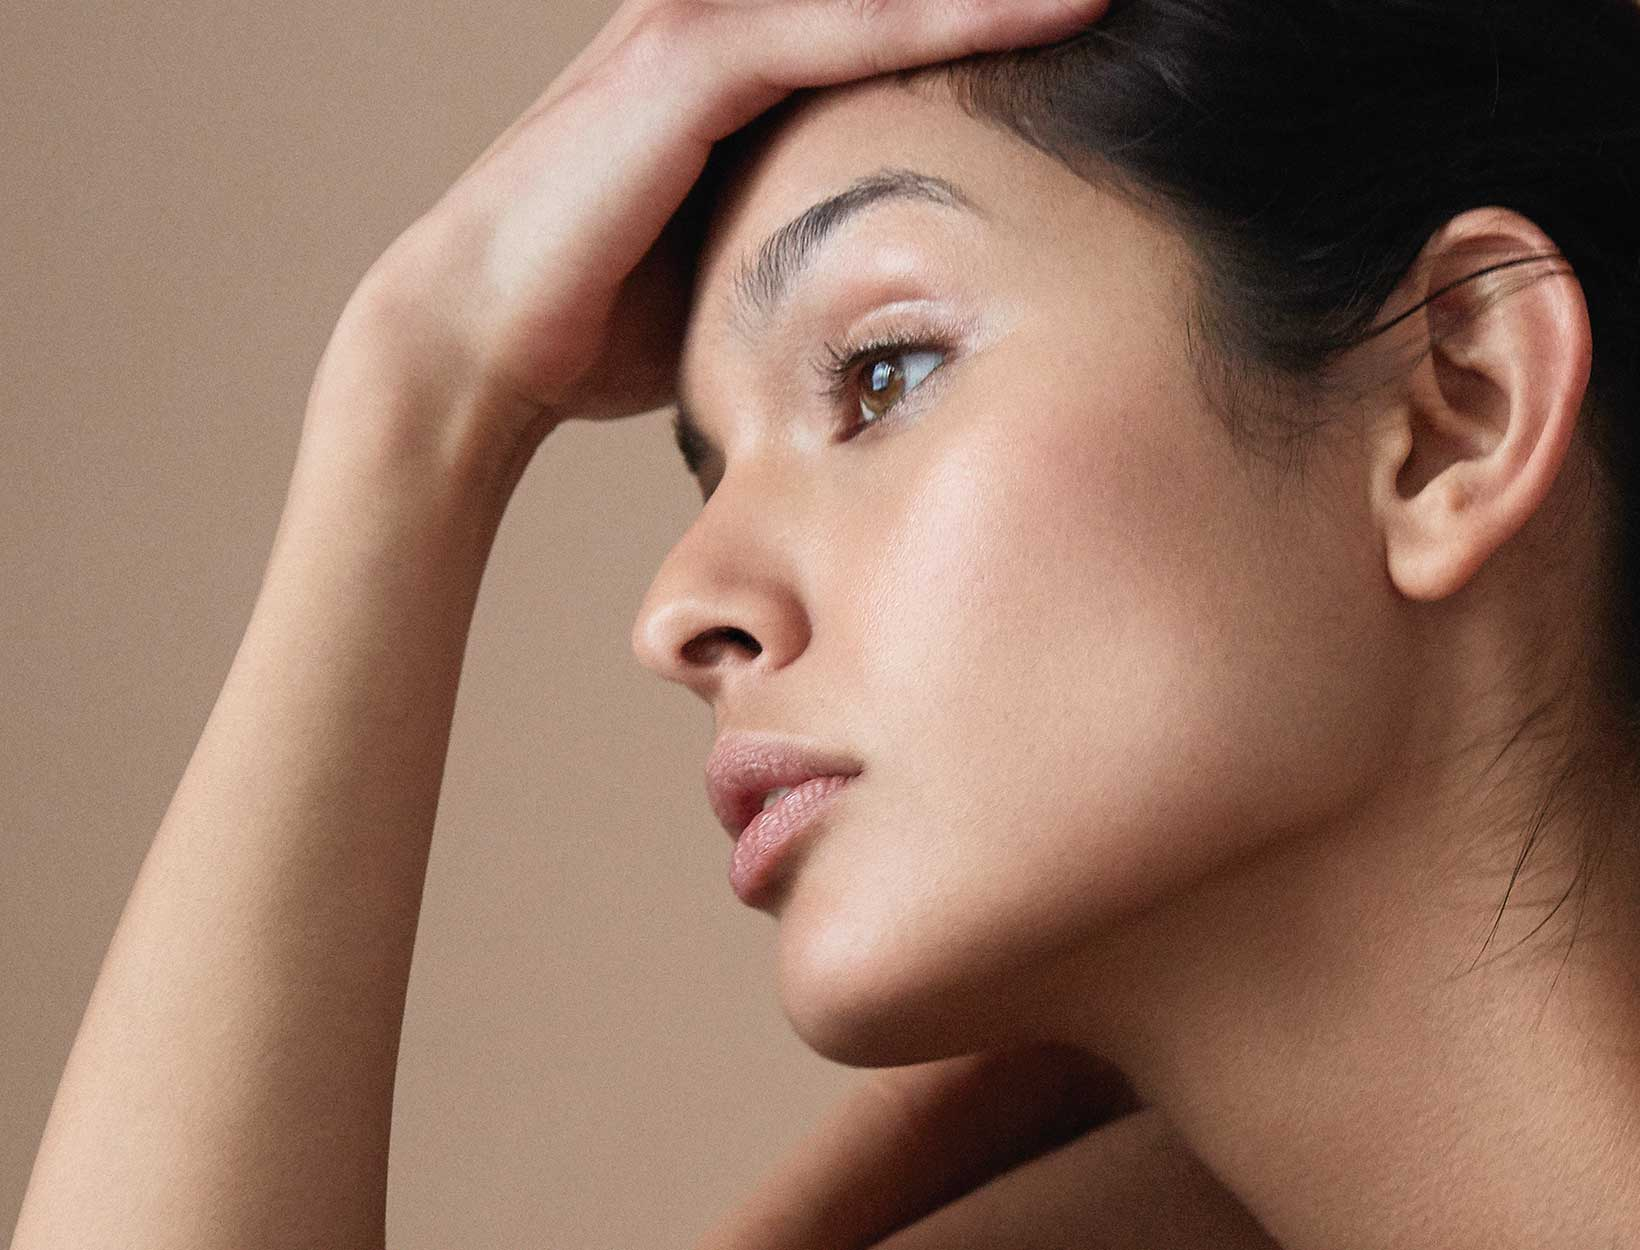 Skin Tightening - How To Tighten The Skin On Your Face | Goop